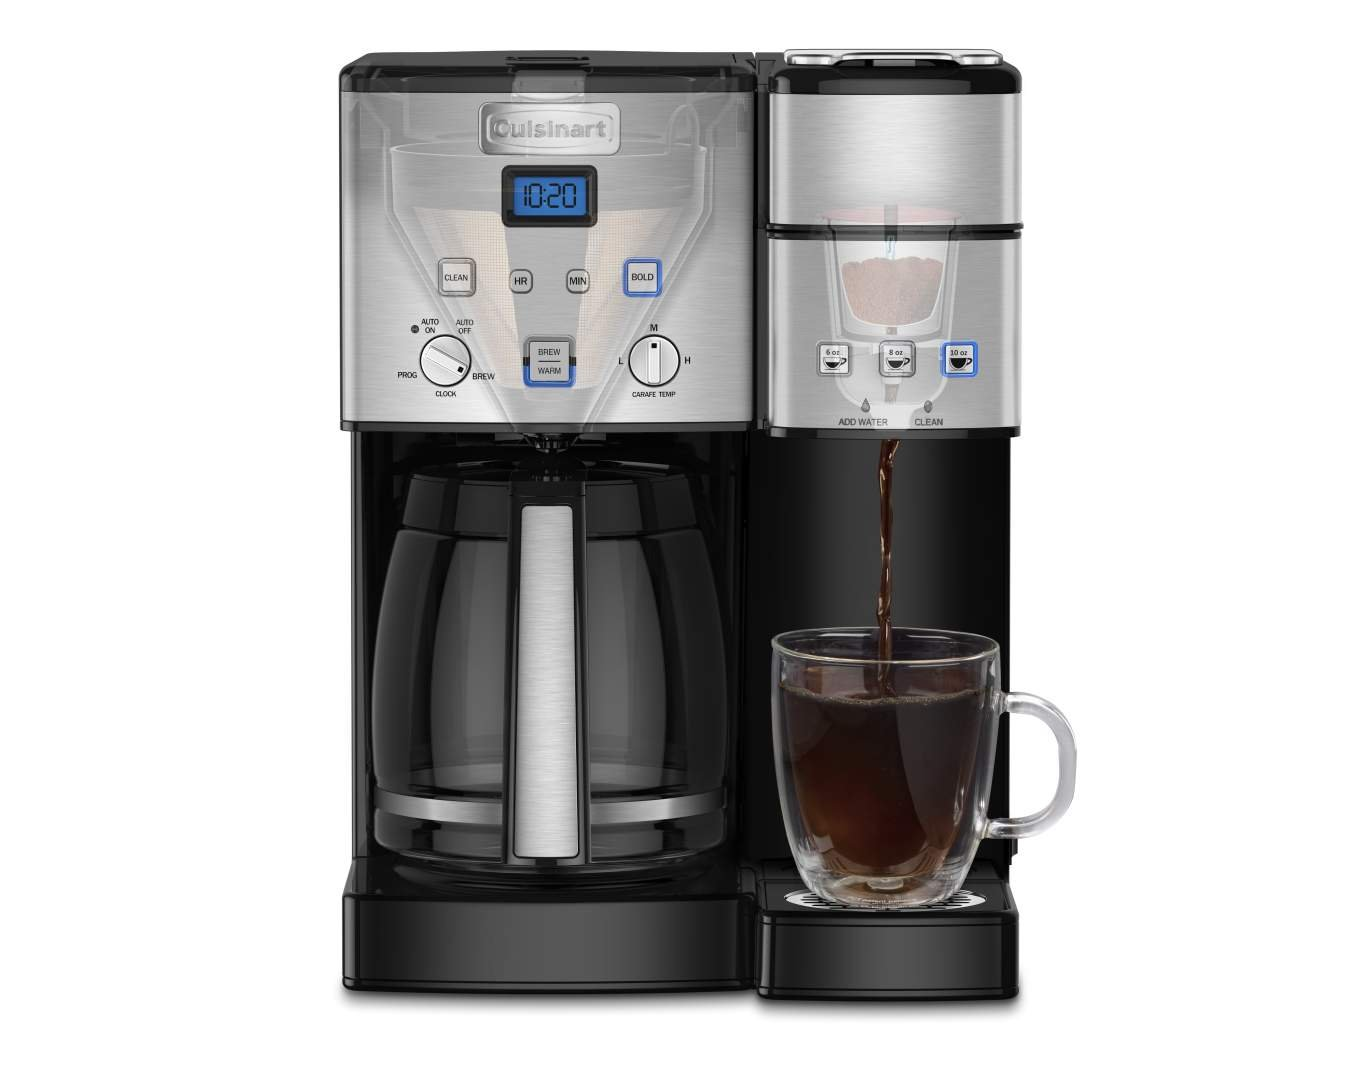 Amazon.com: Cuisinart SS-15 12-Cup Coffee Maker and Single-Serve Brewer,  Stainless Steel: Kitchen & Dining